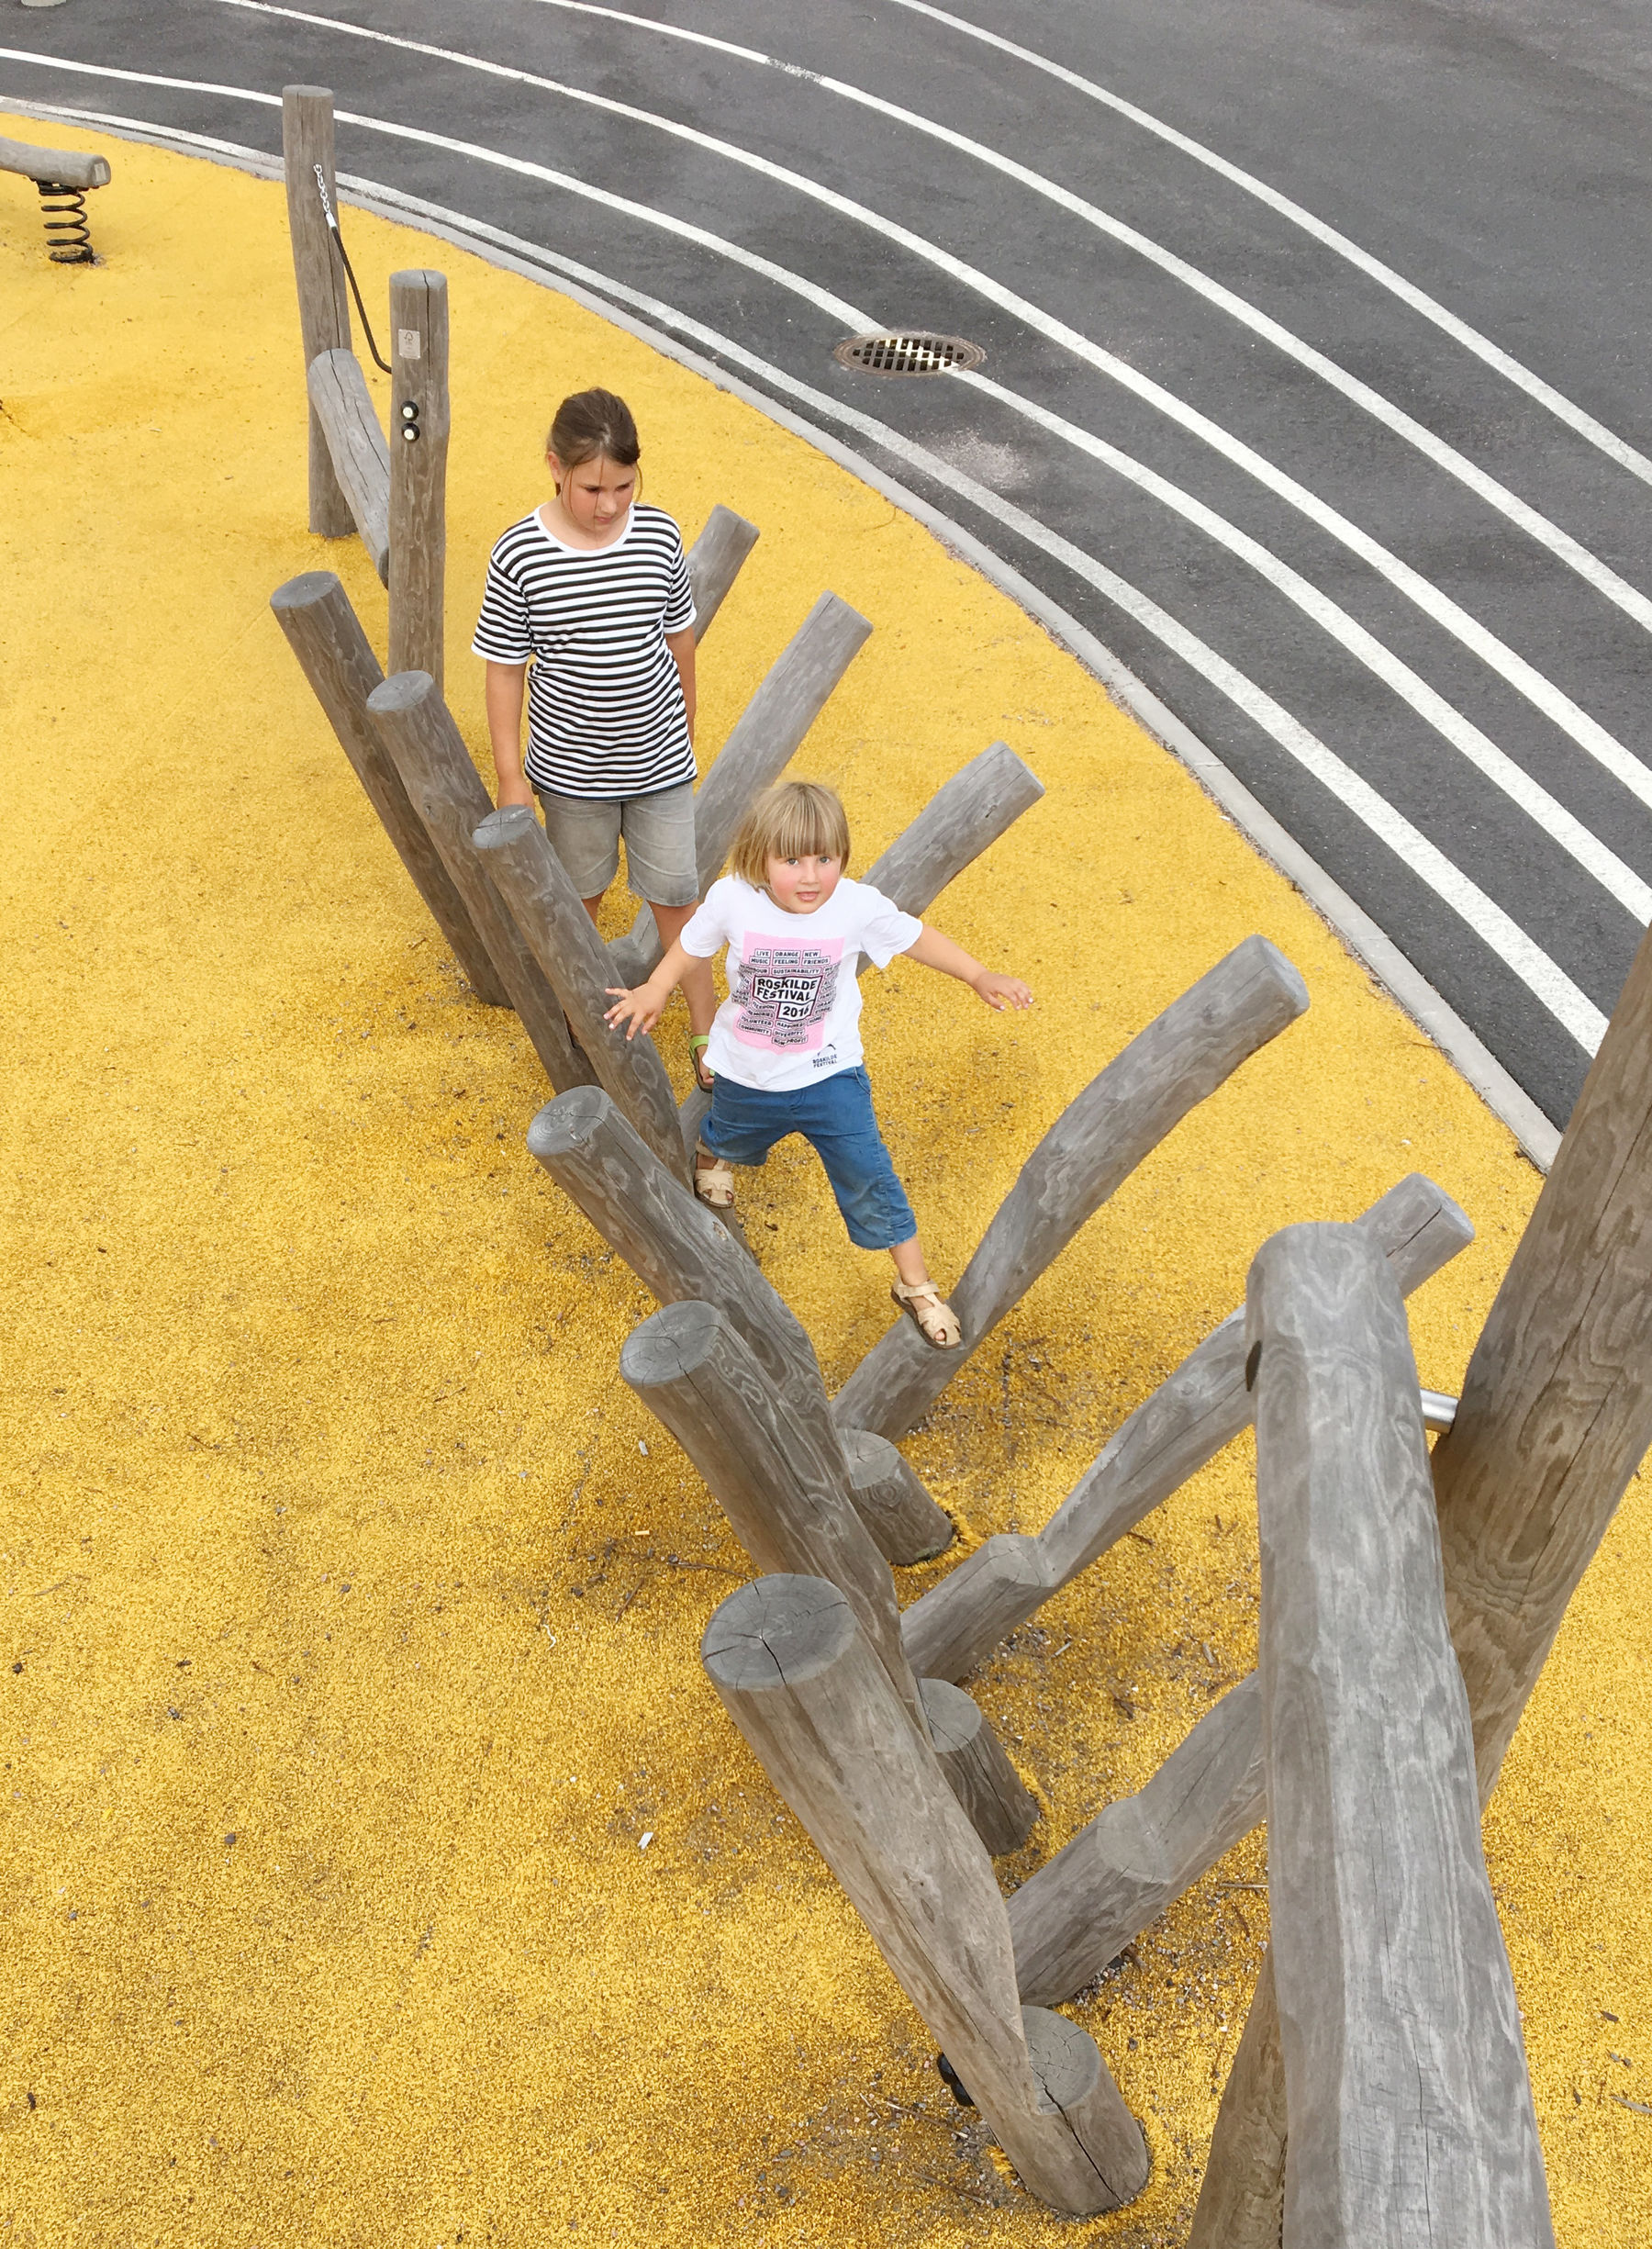 children on yellow playground